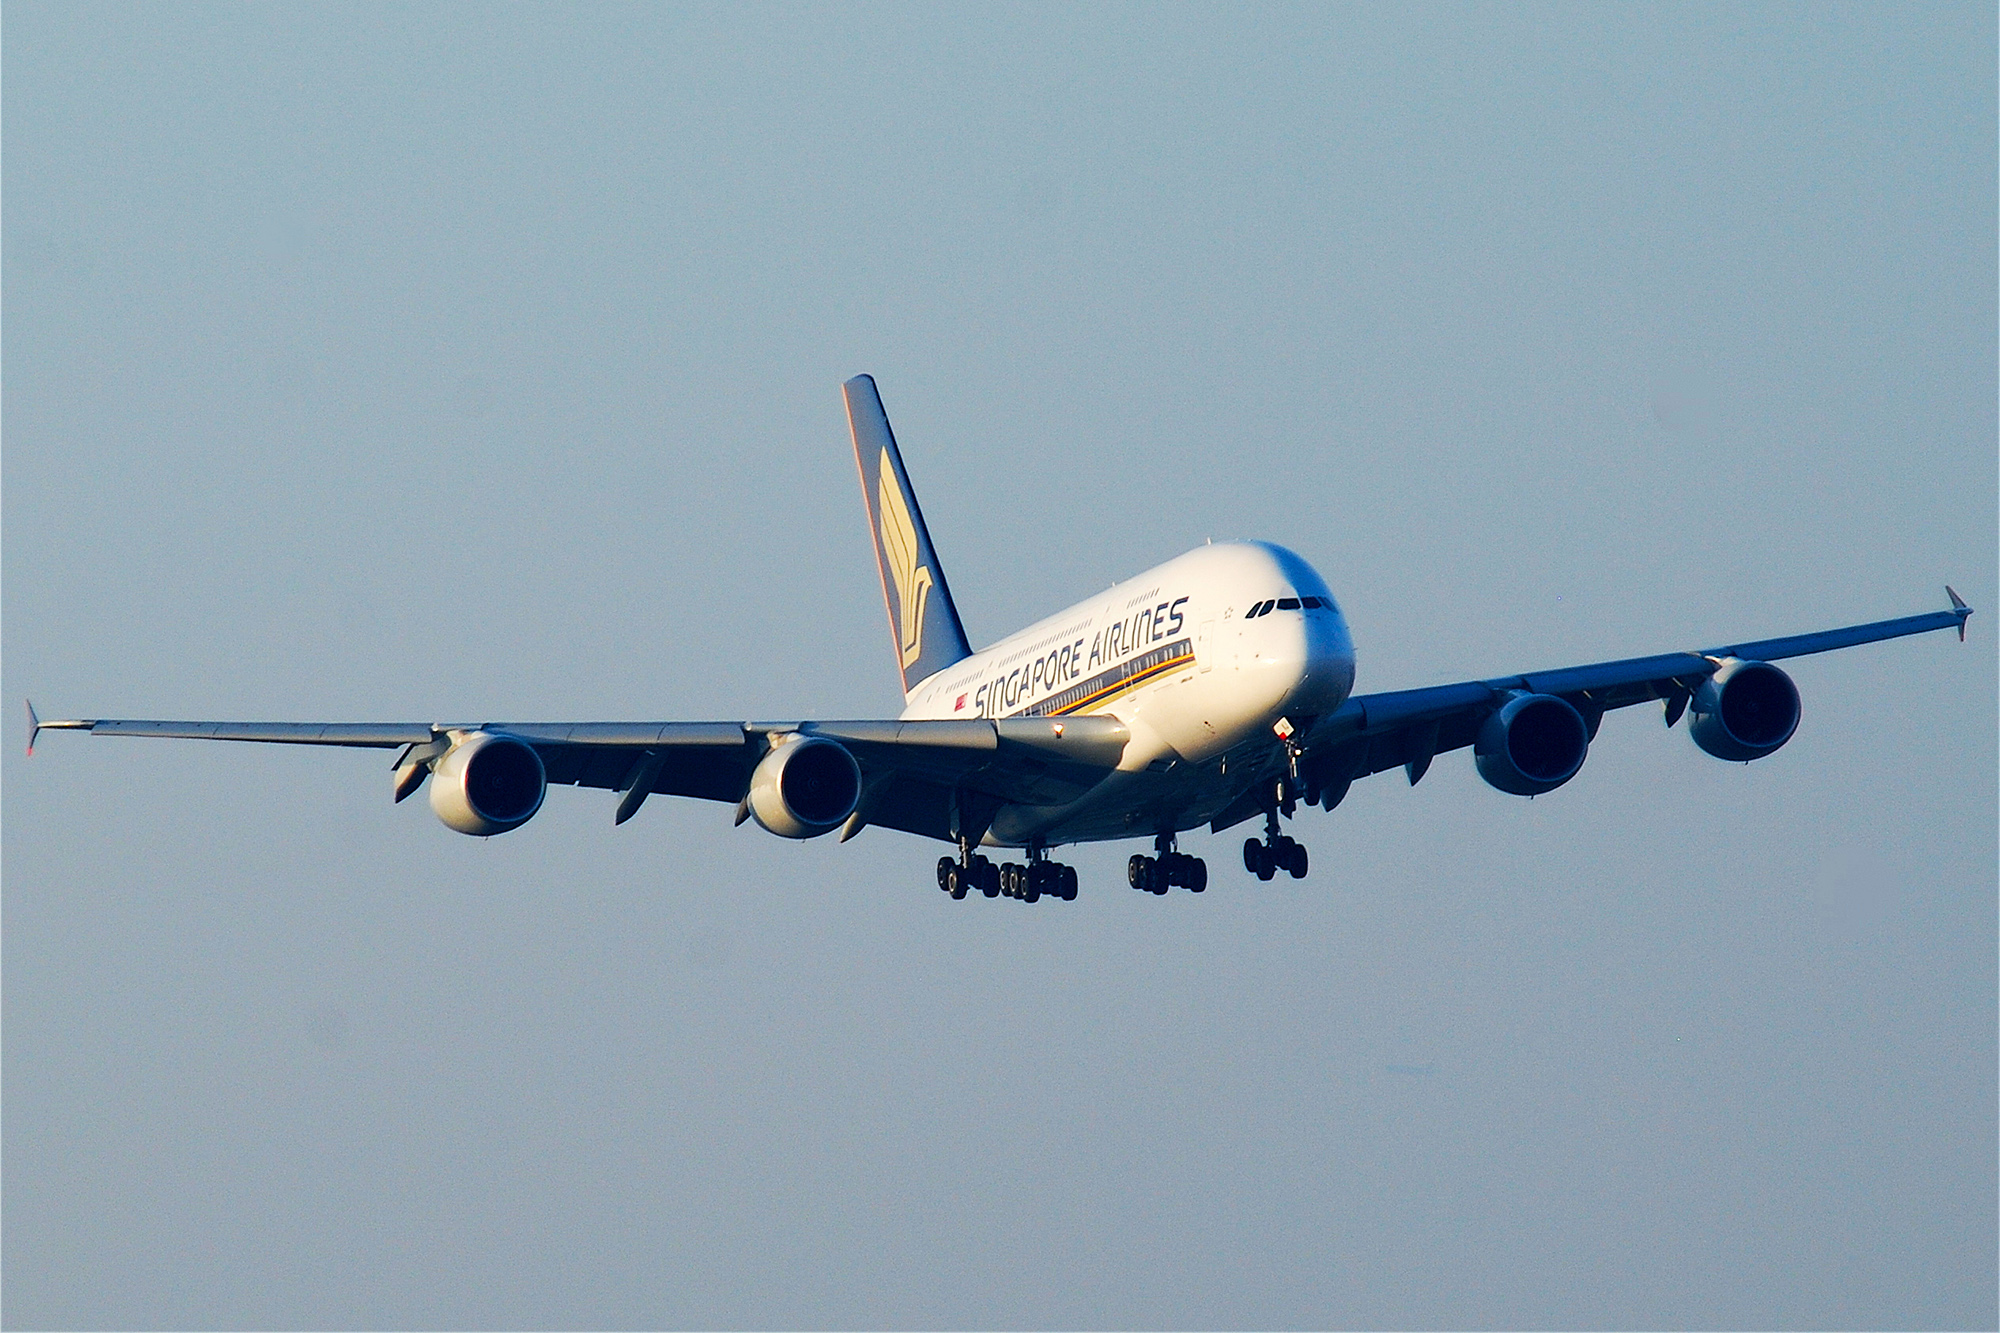 You can now book Singapore Airlines award seats using Alaska miles